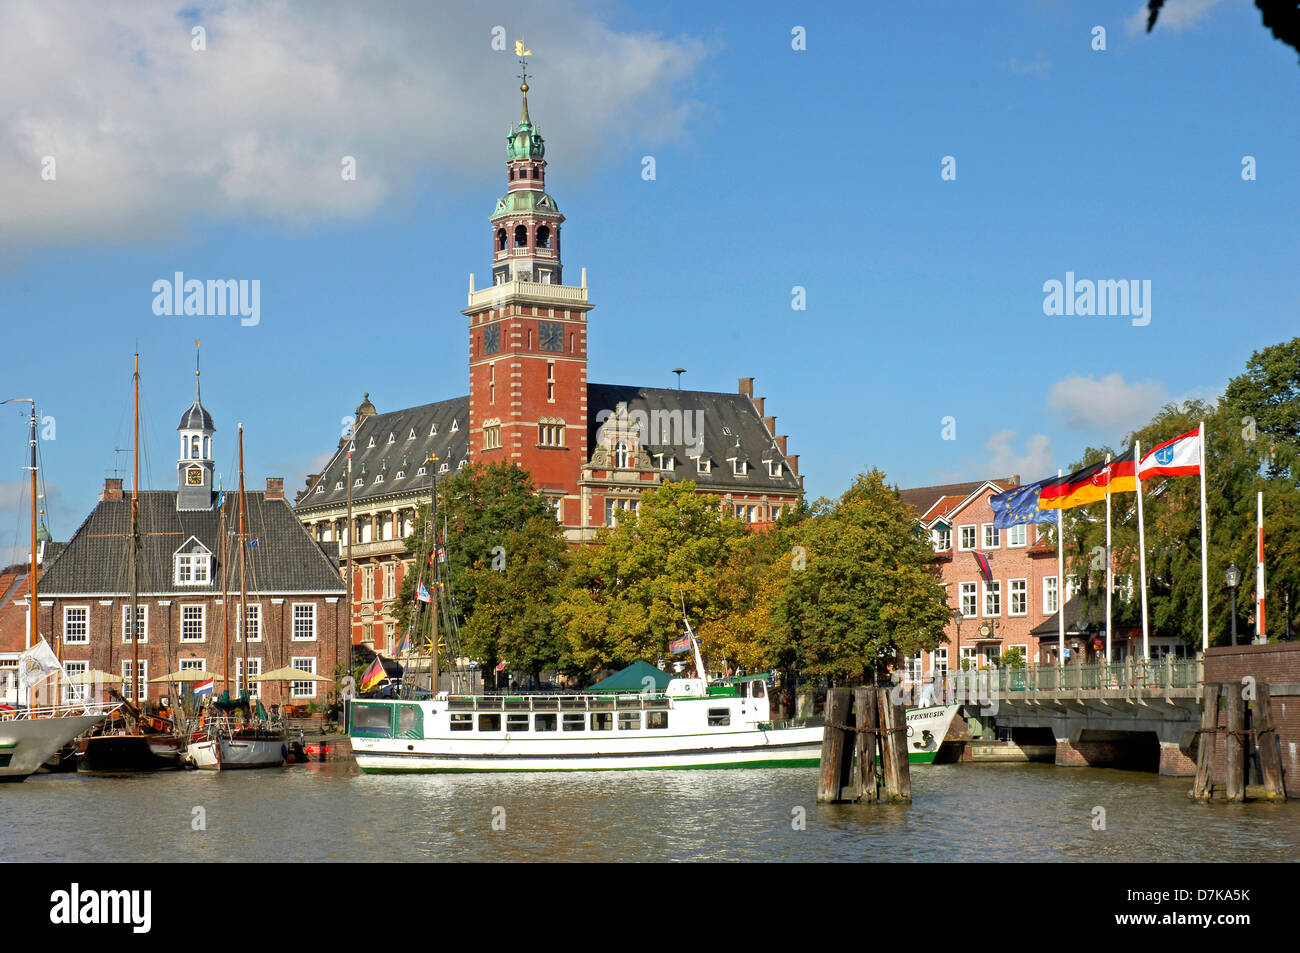 Germany, Lower-Saxony, Leer, historic town hall - Stock Image